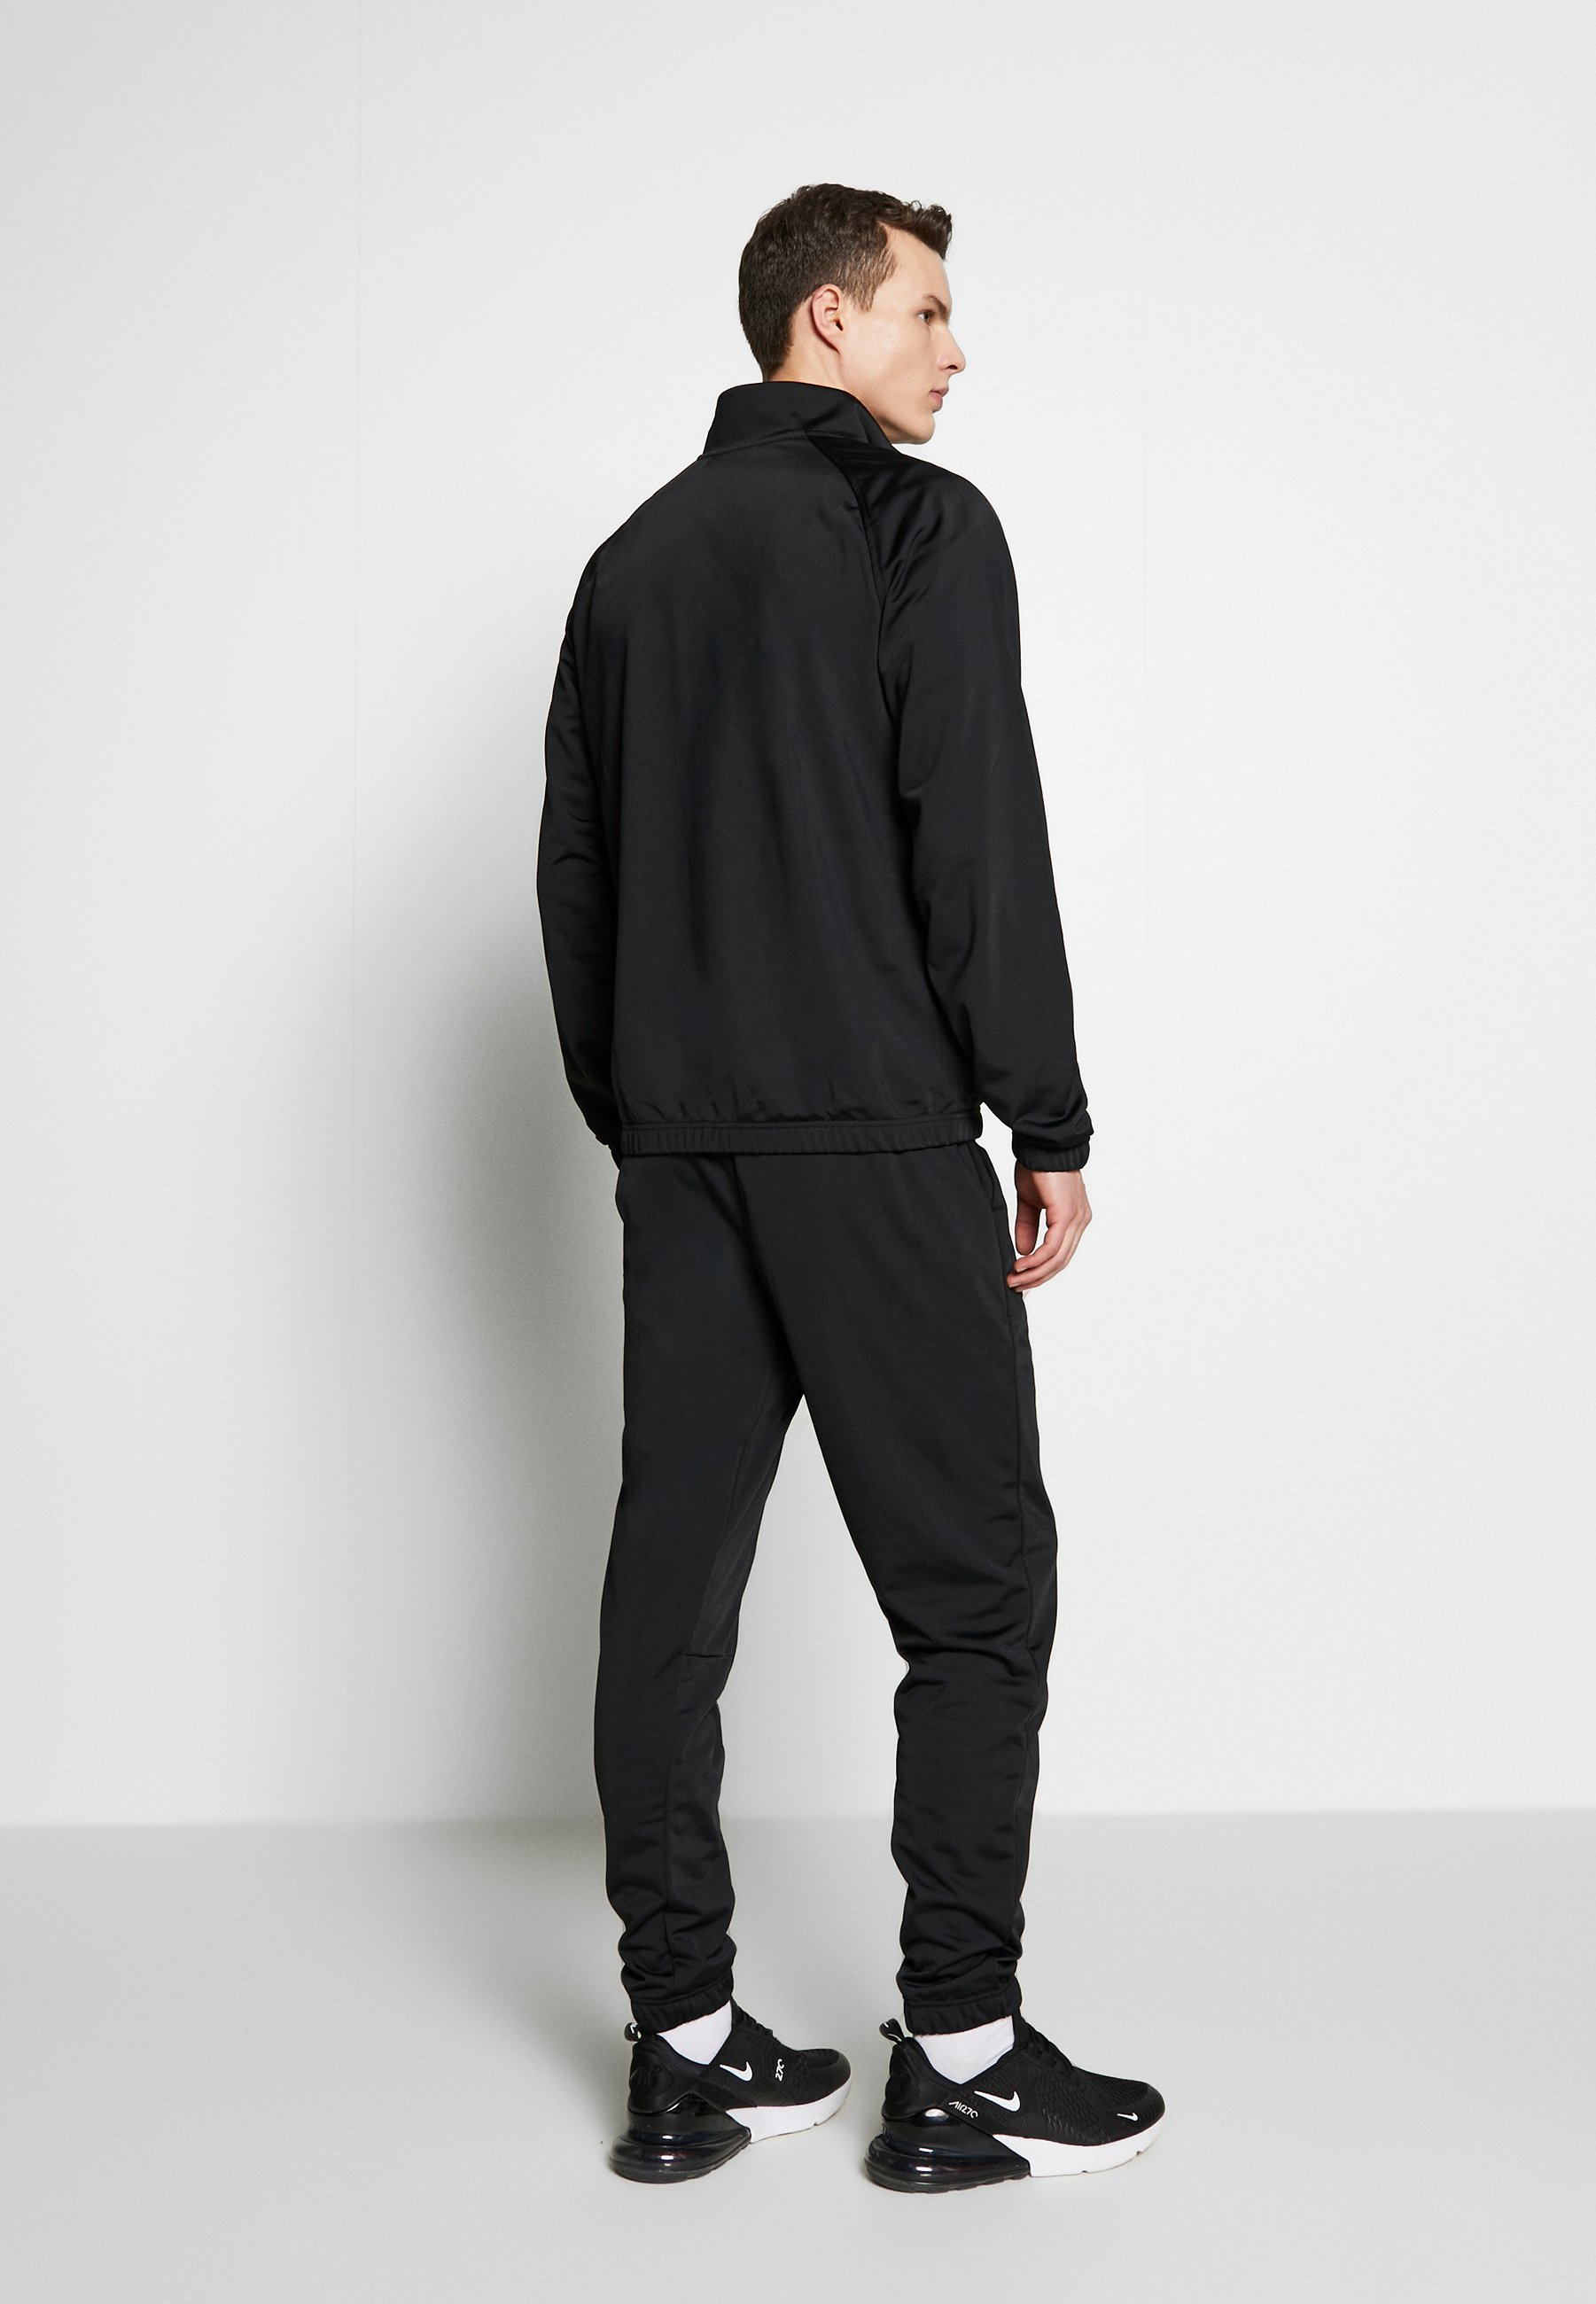 Cheap Recommend Men's Clothing Nike Sportswear SUIT Tracksuit black/white qbRBZBzjm 6nA9UYJXg